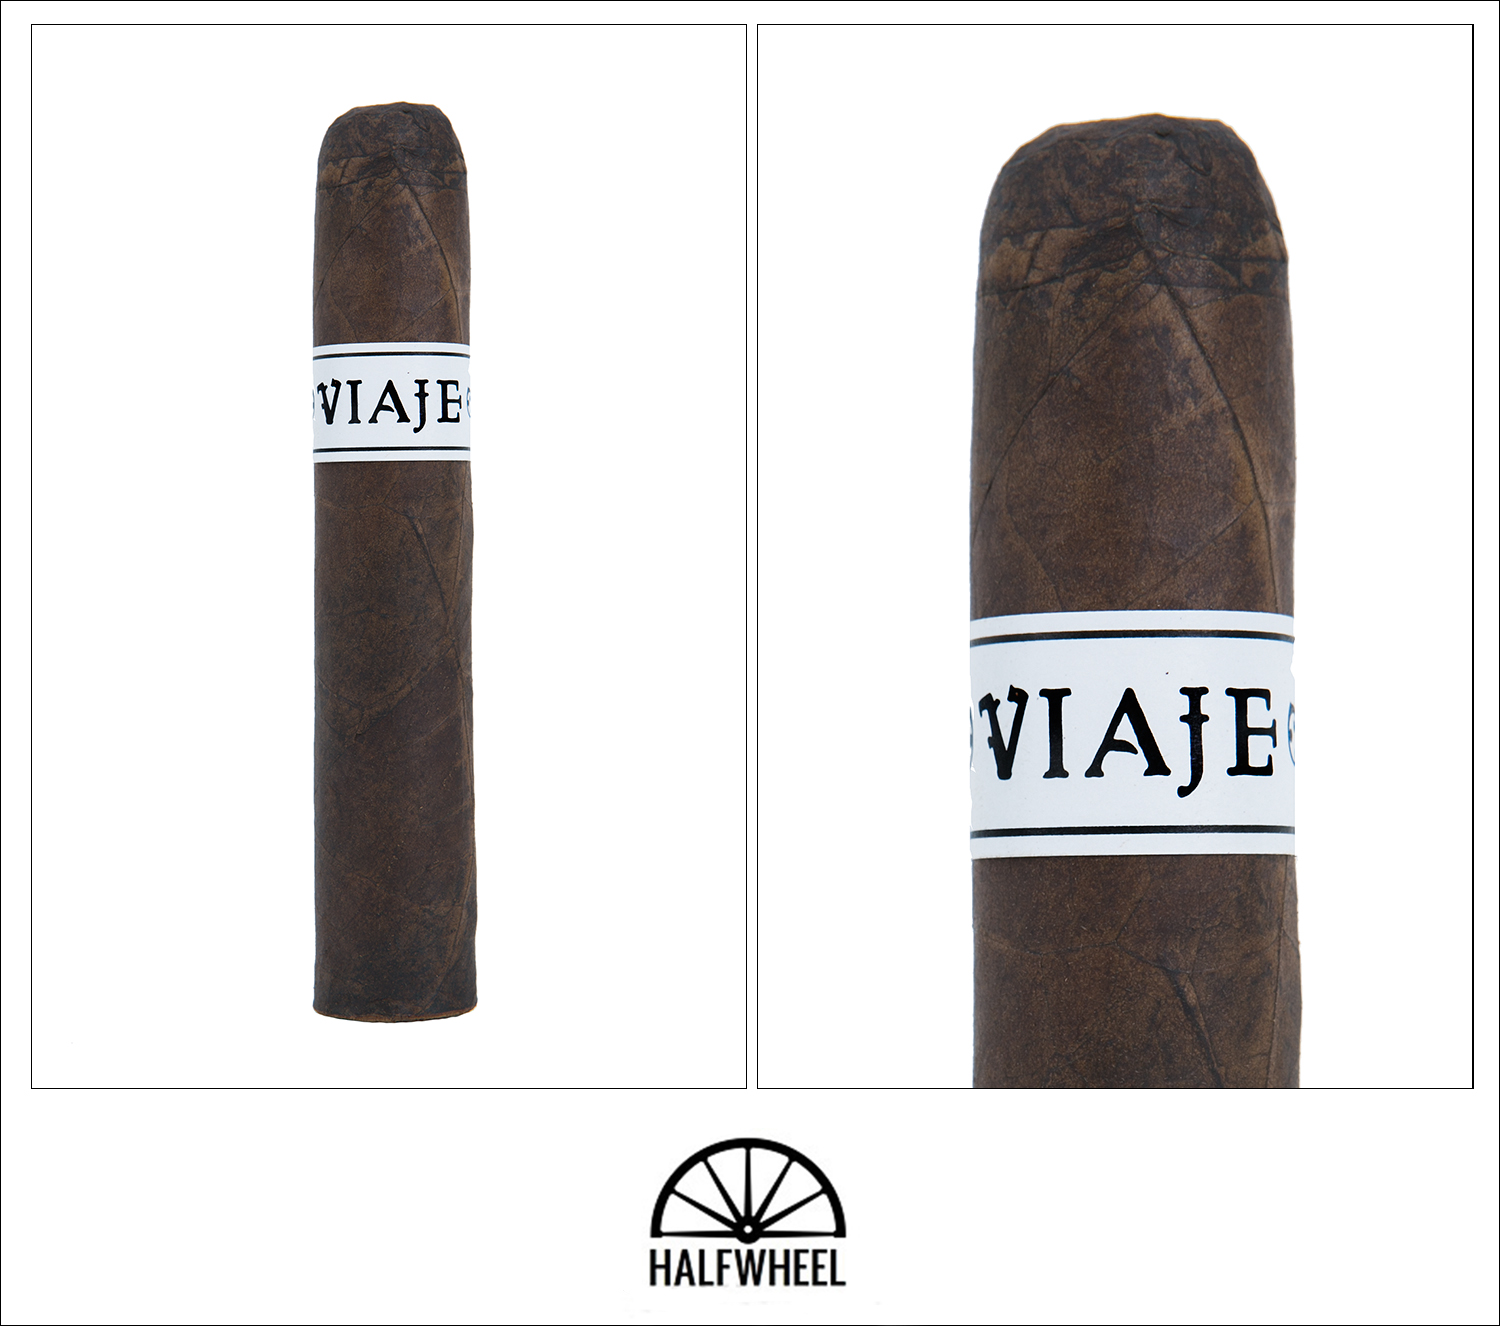 Viaje White Label Project Stuffed Turkey Dark Meat  2013 1